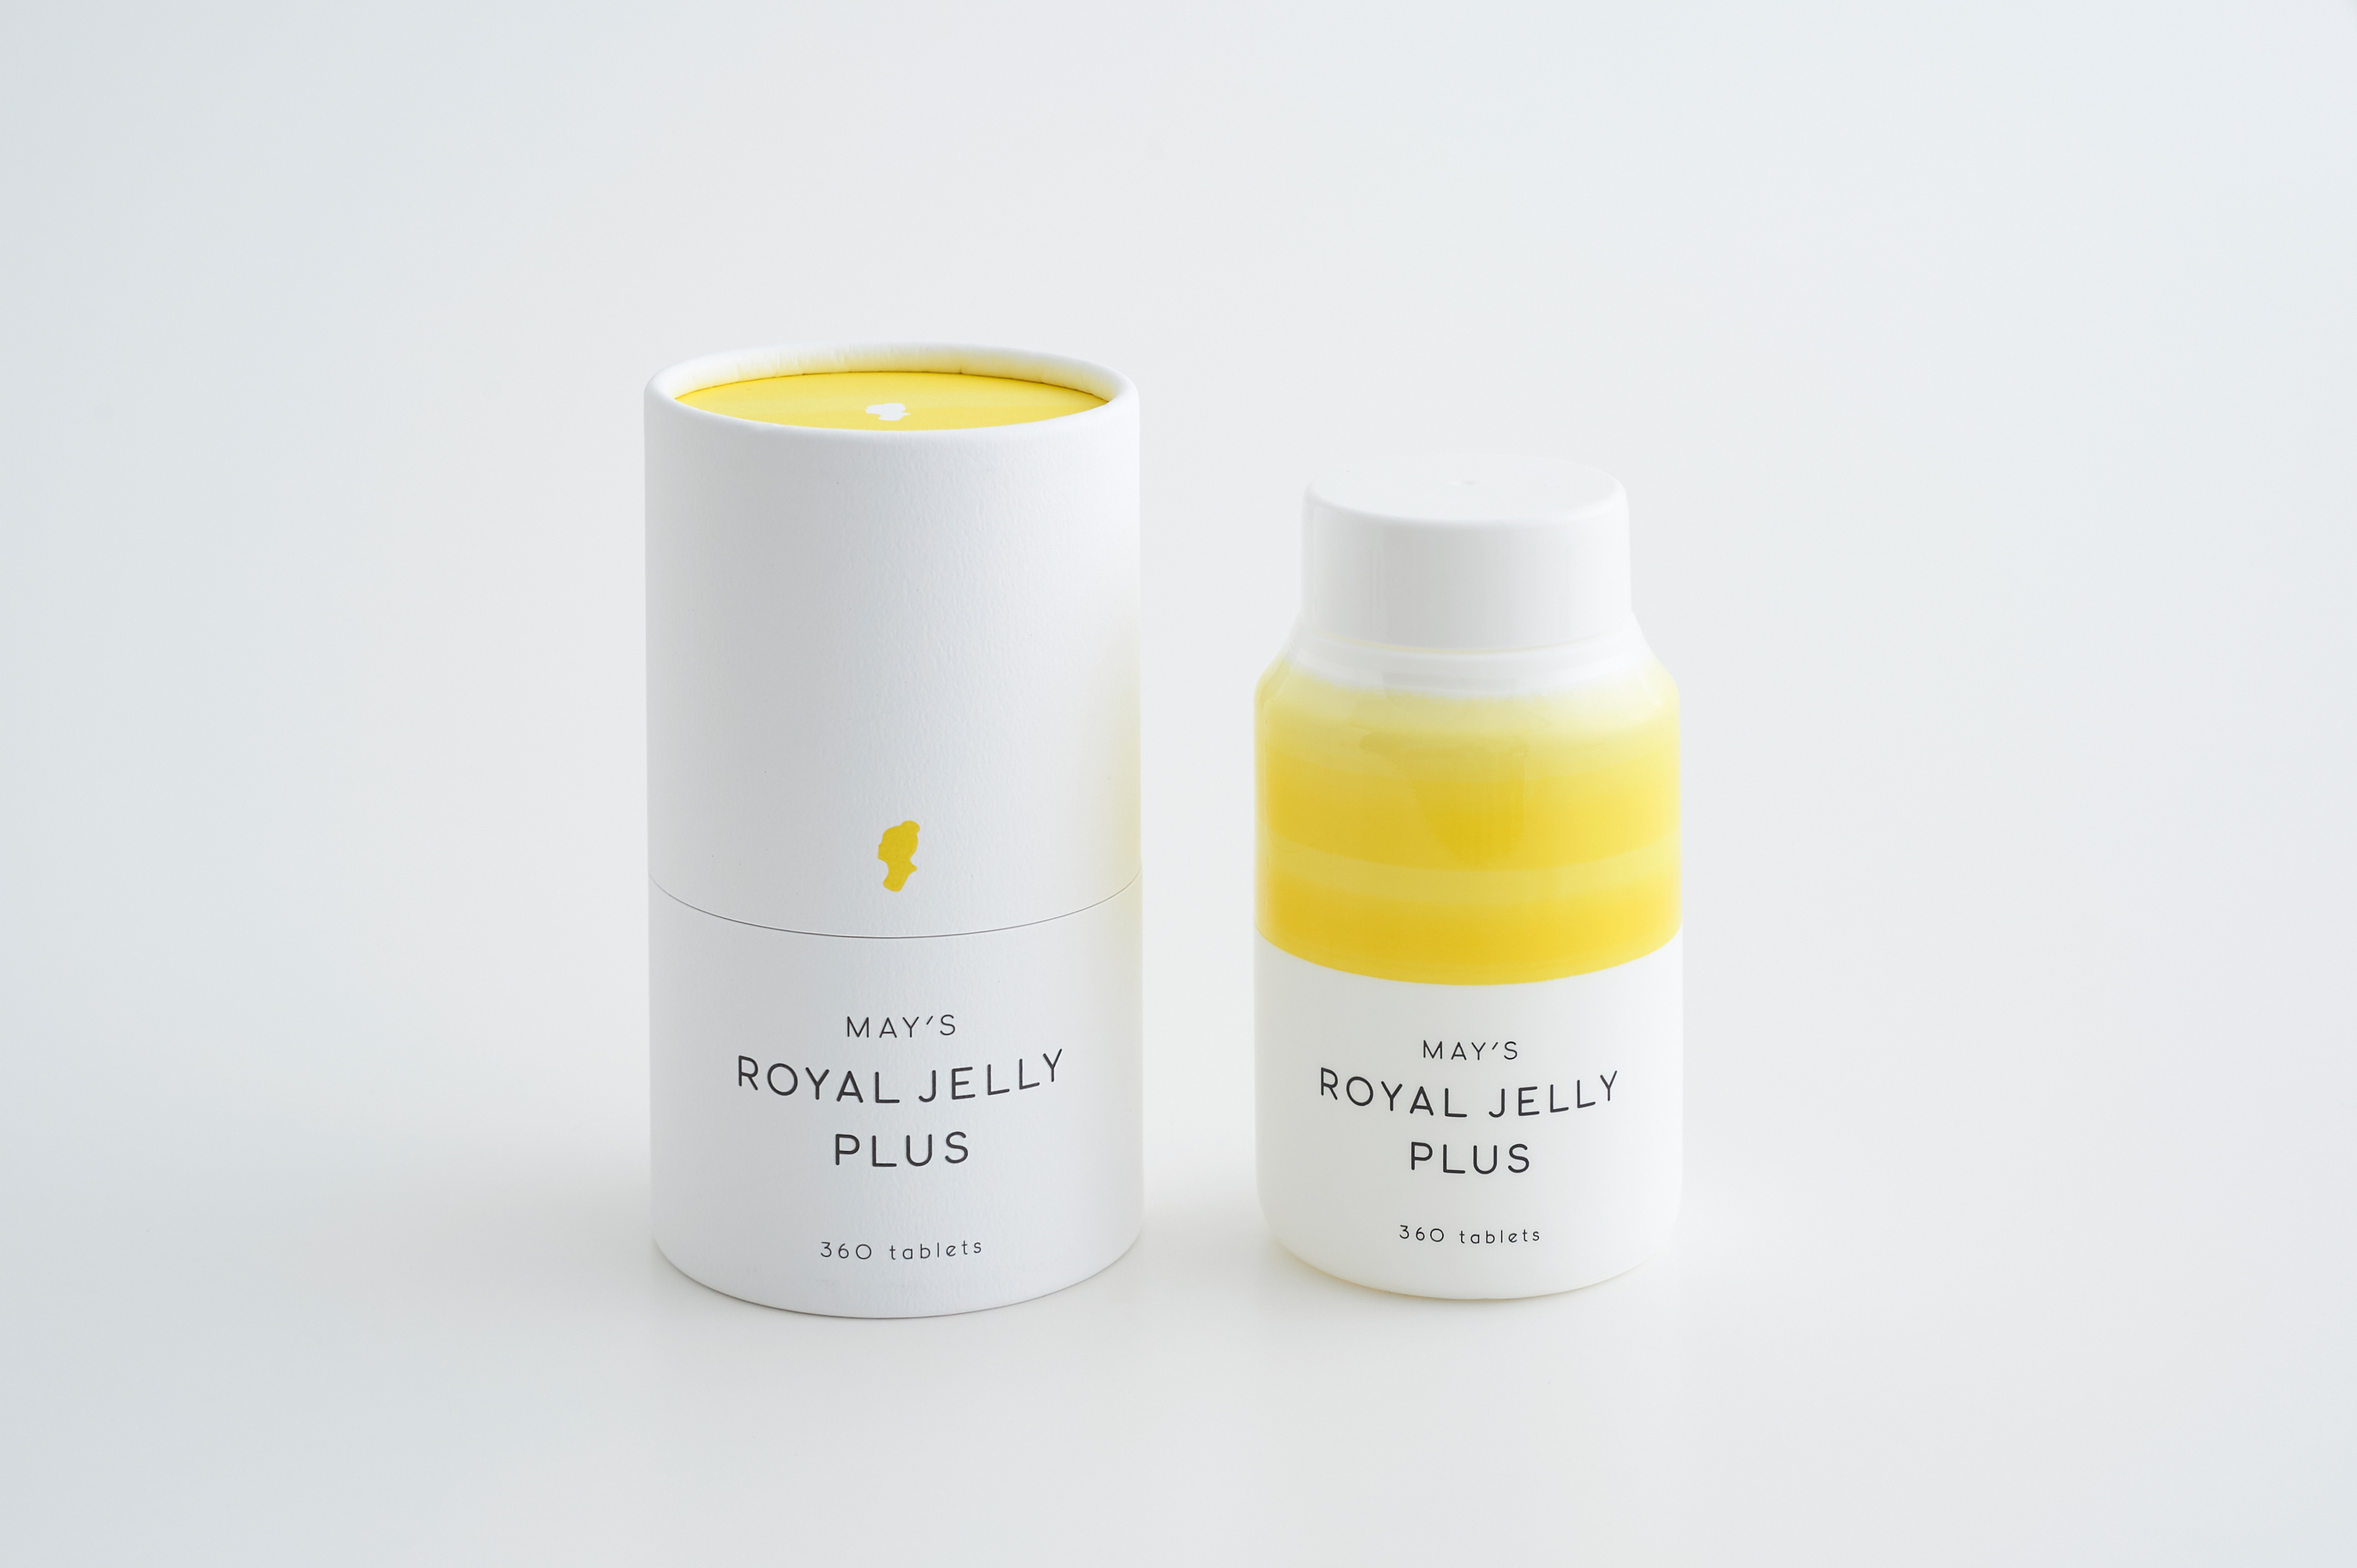 MAY'S ROYAL JELLY PLUS